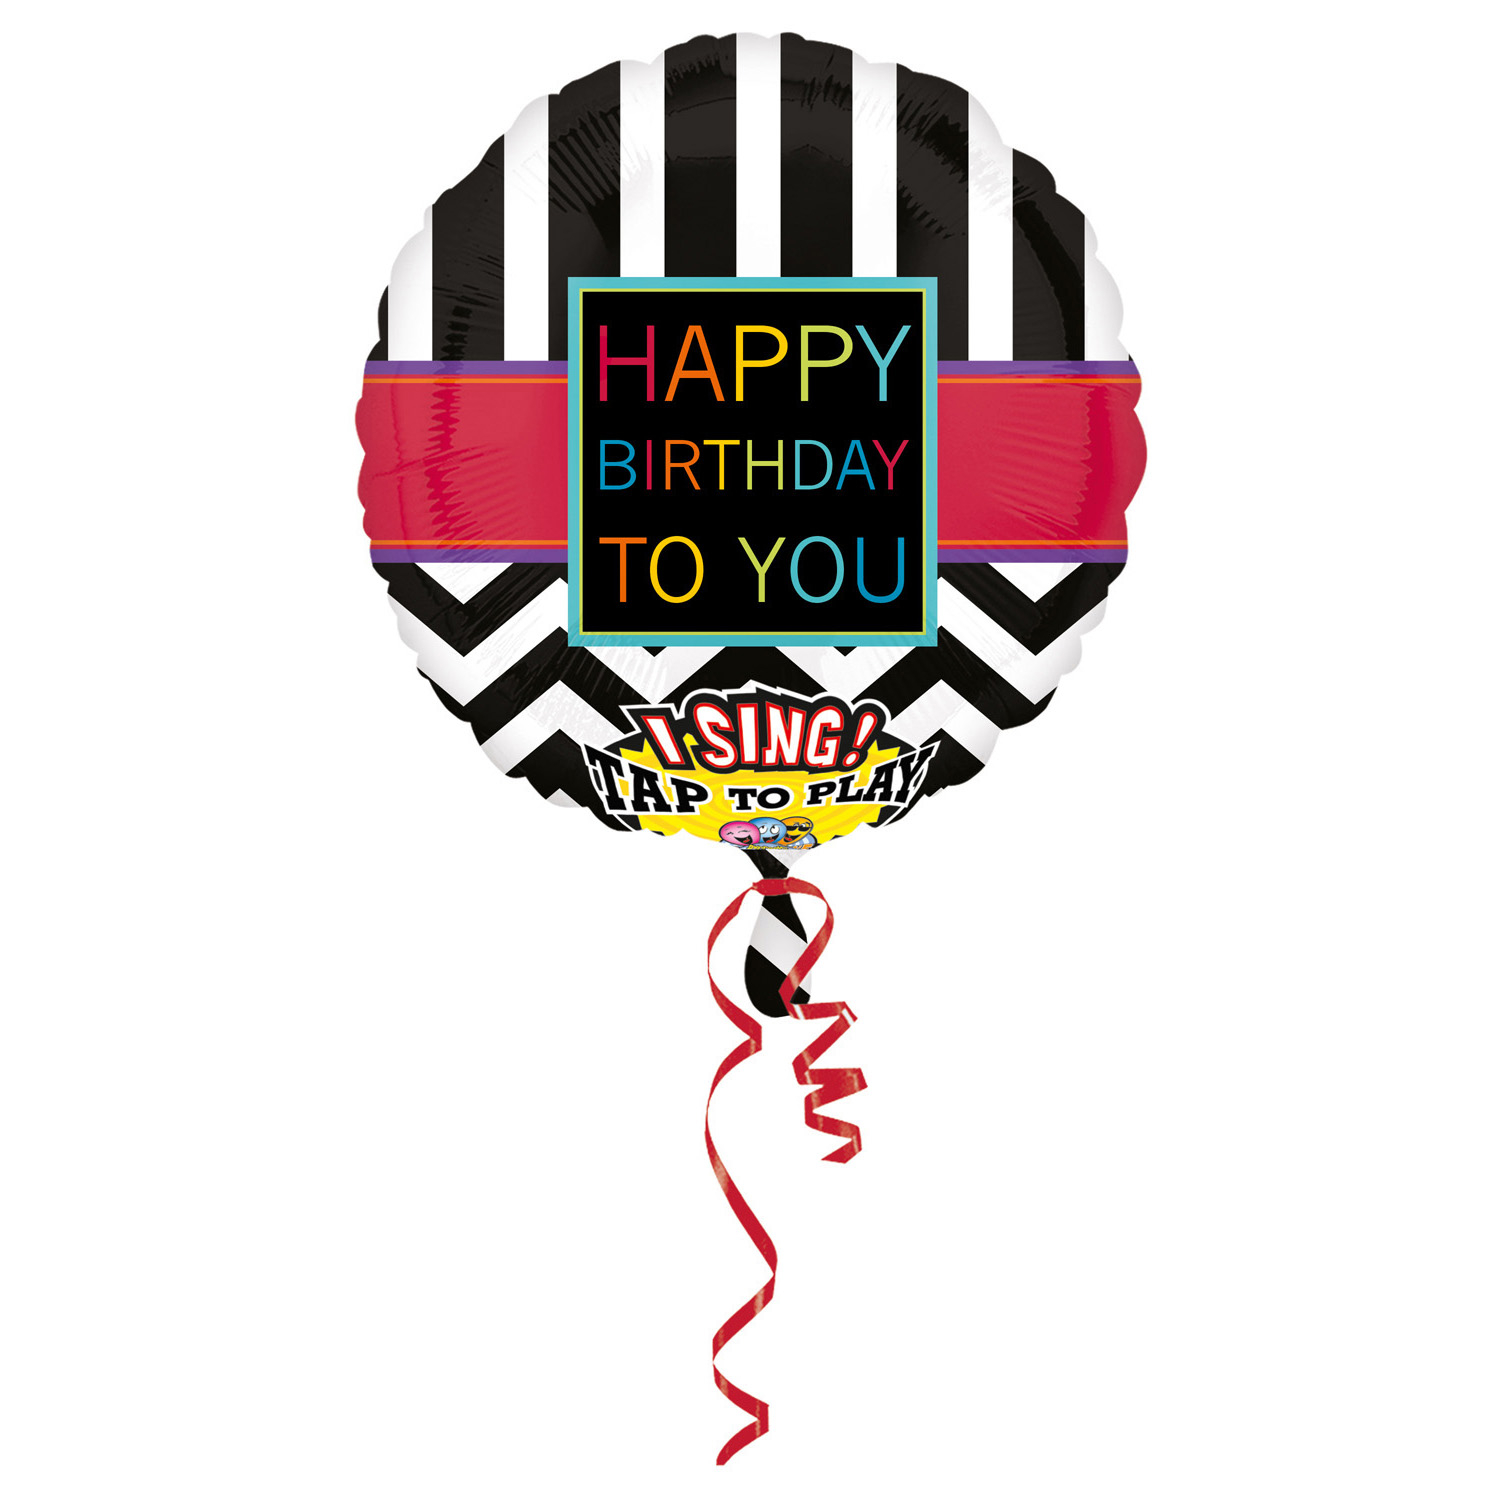 Sing A Tune Chevron Happy Birthday To You Foil Balloon P60 Packaged 71 X 71 Cm Amscan Europe